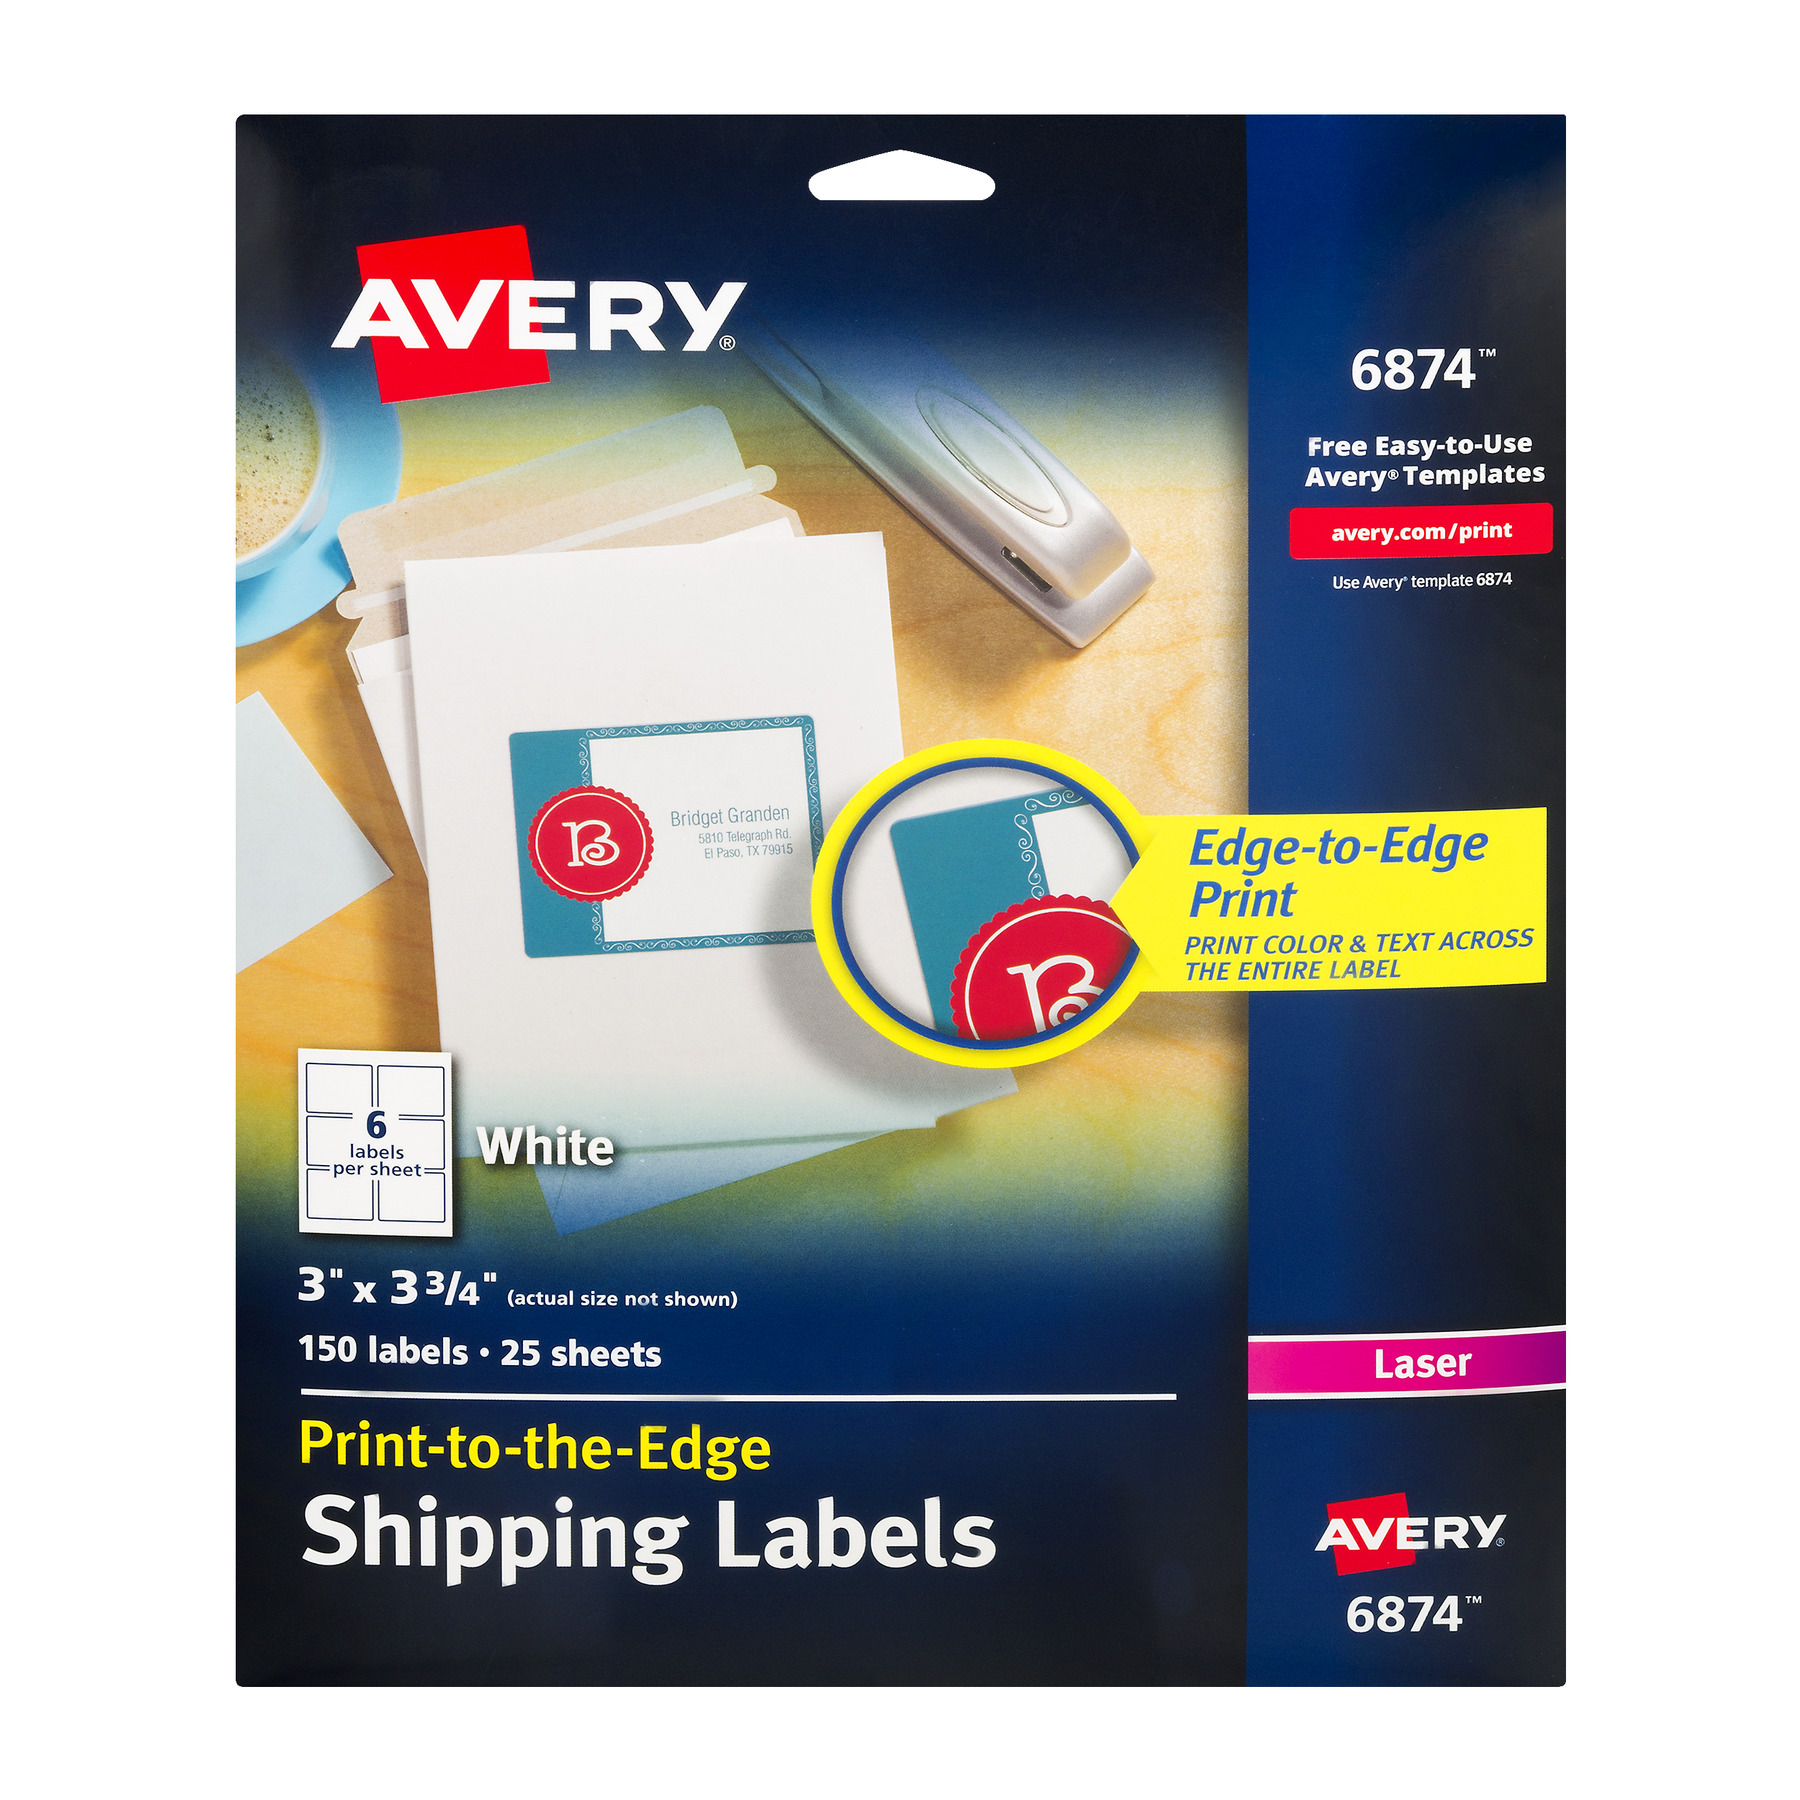 "Avery(R) Print-to-the-Edge Shipping Labels for Color Laser Printers and Copiers 6874, 3"" x 3-3/4"", Pack of 150"